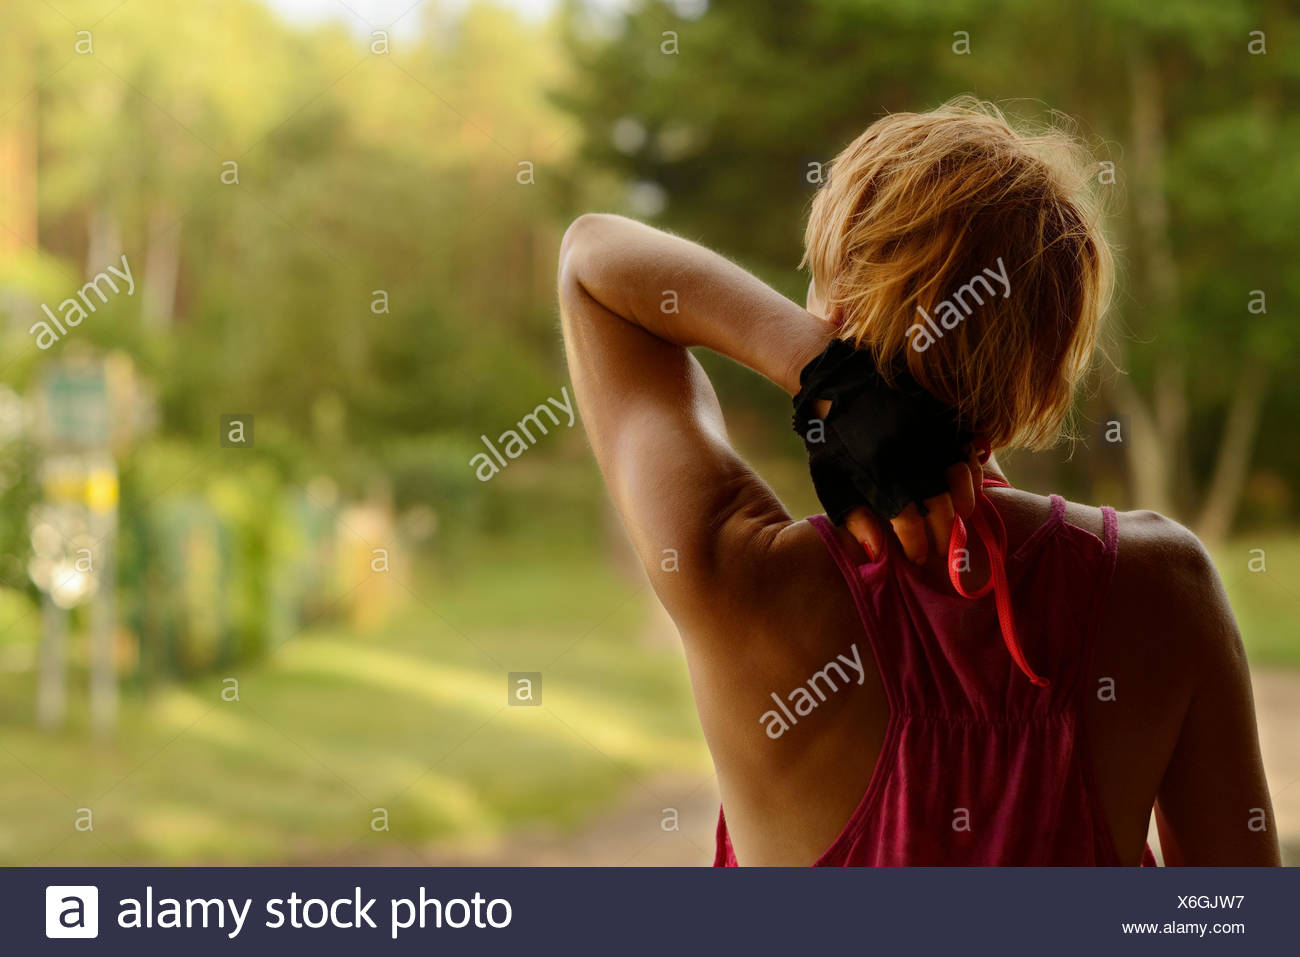 Young woman stretching outdoor. - Stock Image